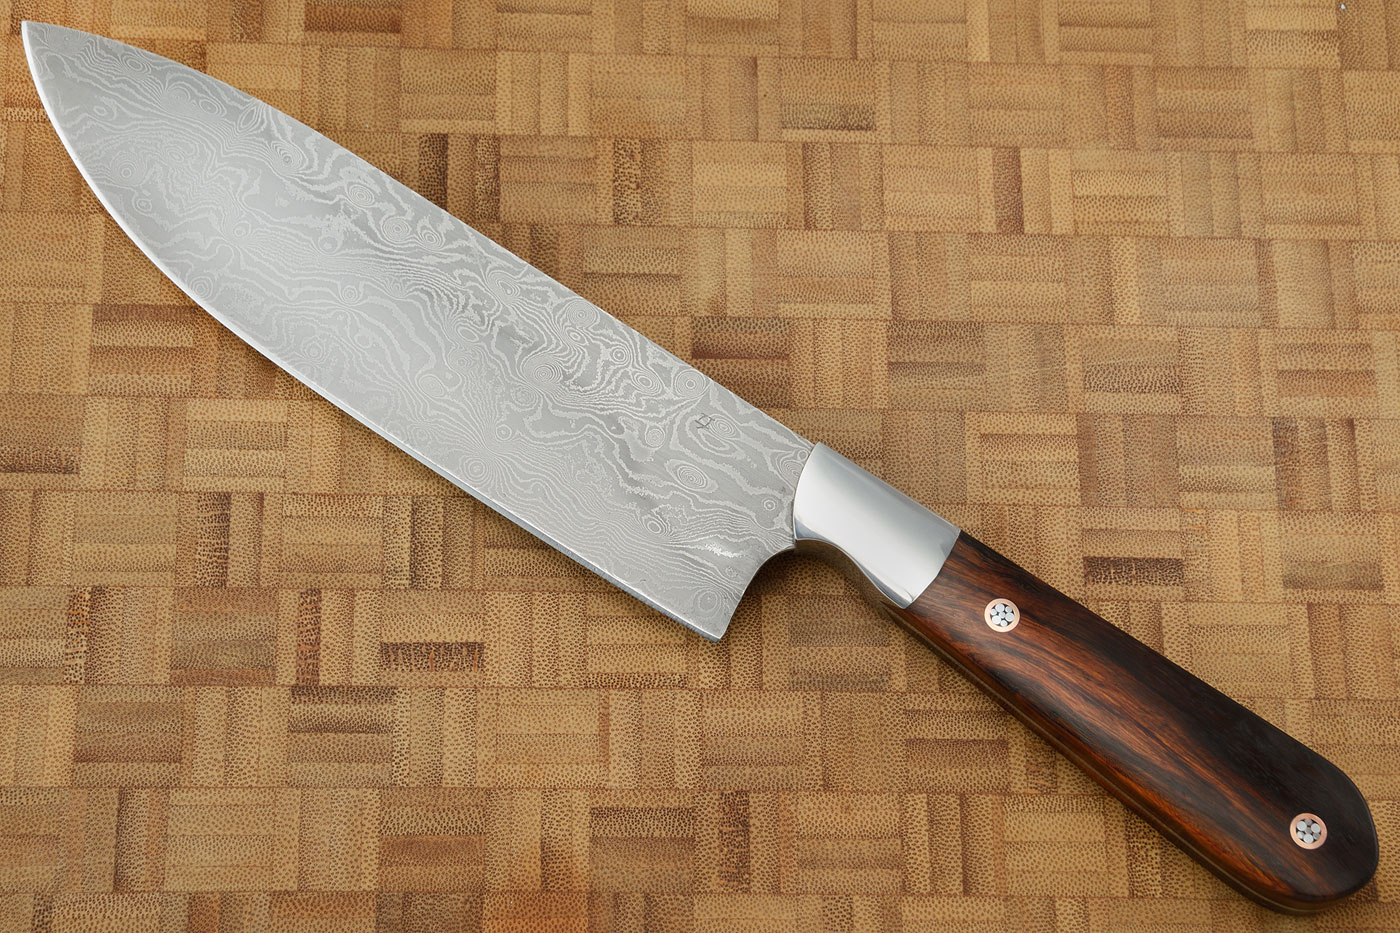 Damascus Chef's Knife (7-1/8 in) with Ironwood